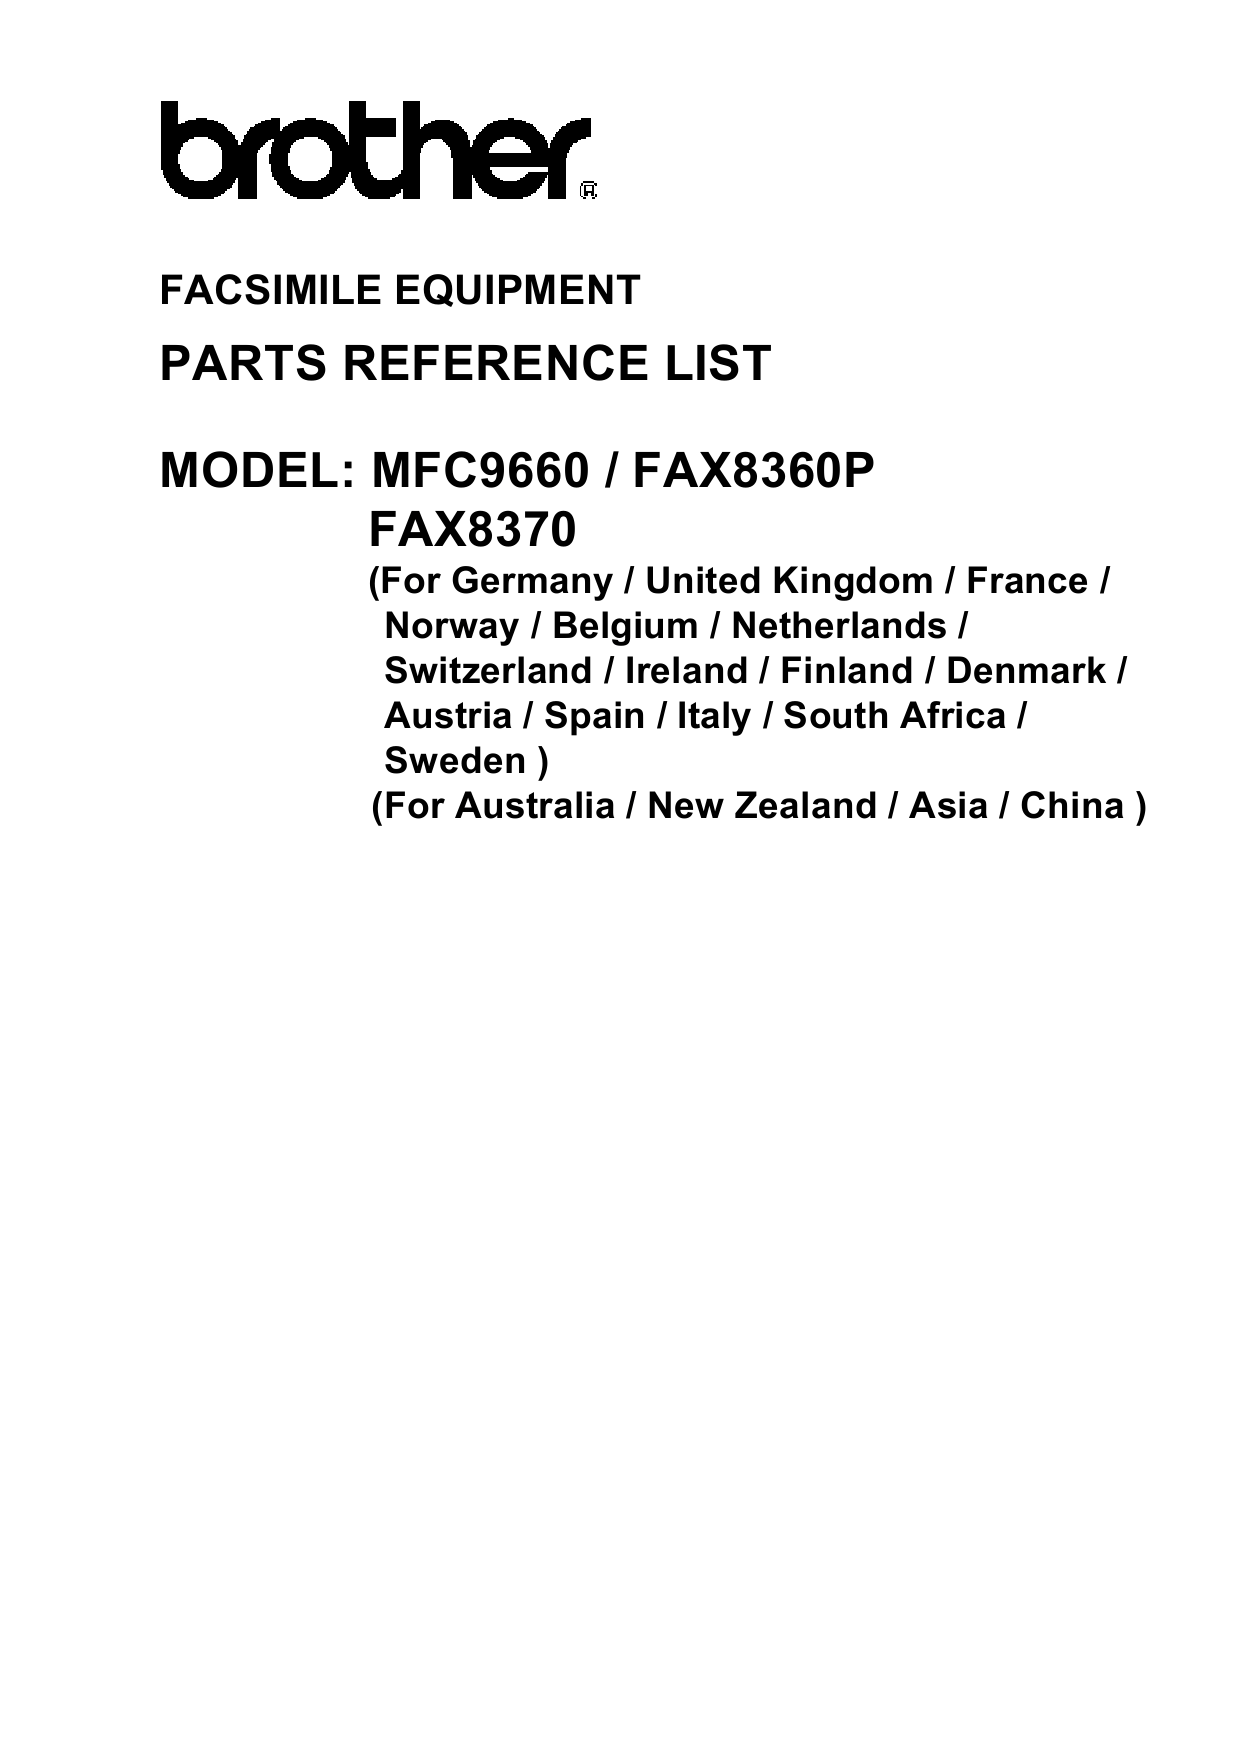 Brother MFC 9660 FAX8360 8370 Parts Reference-1